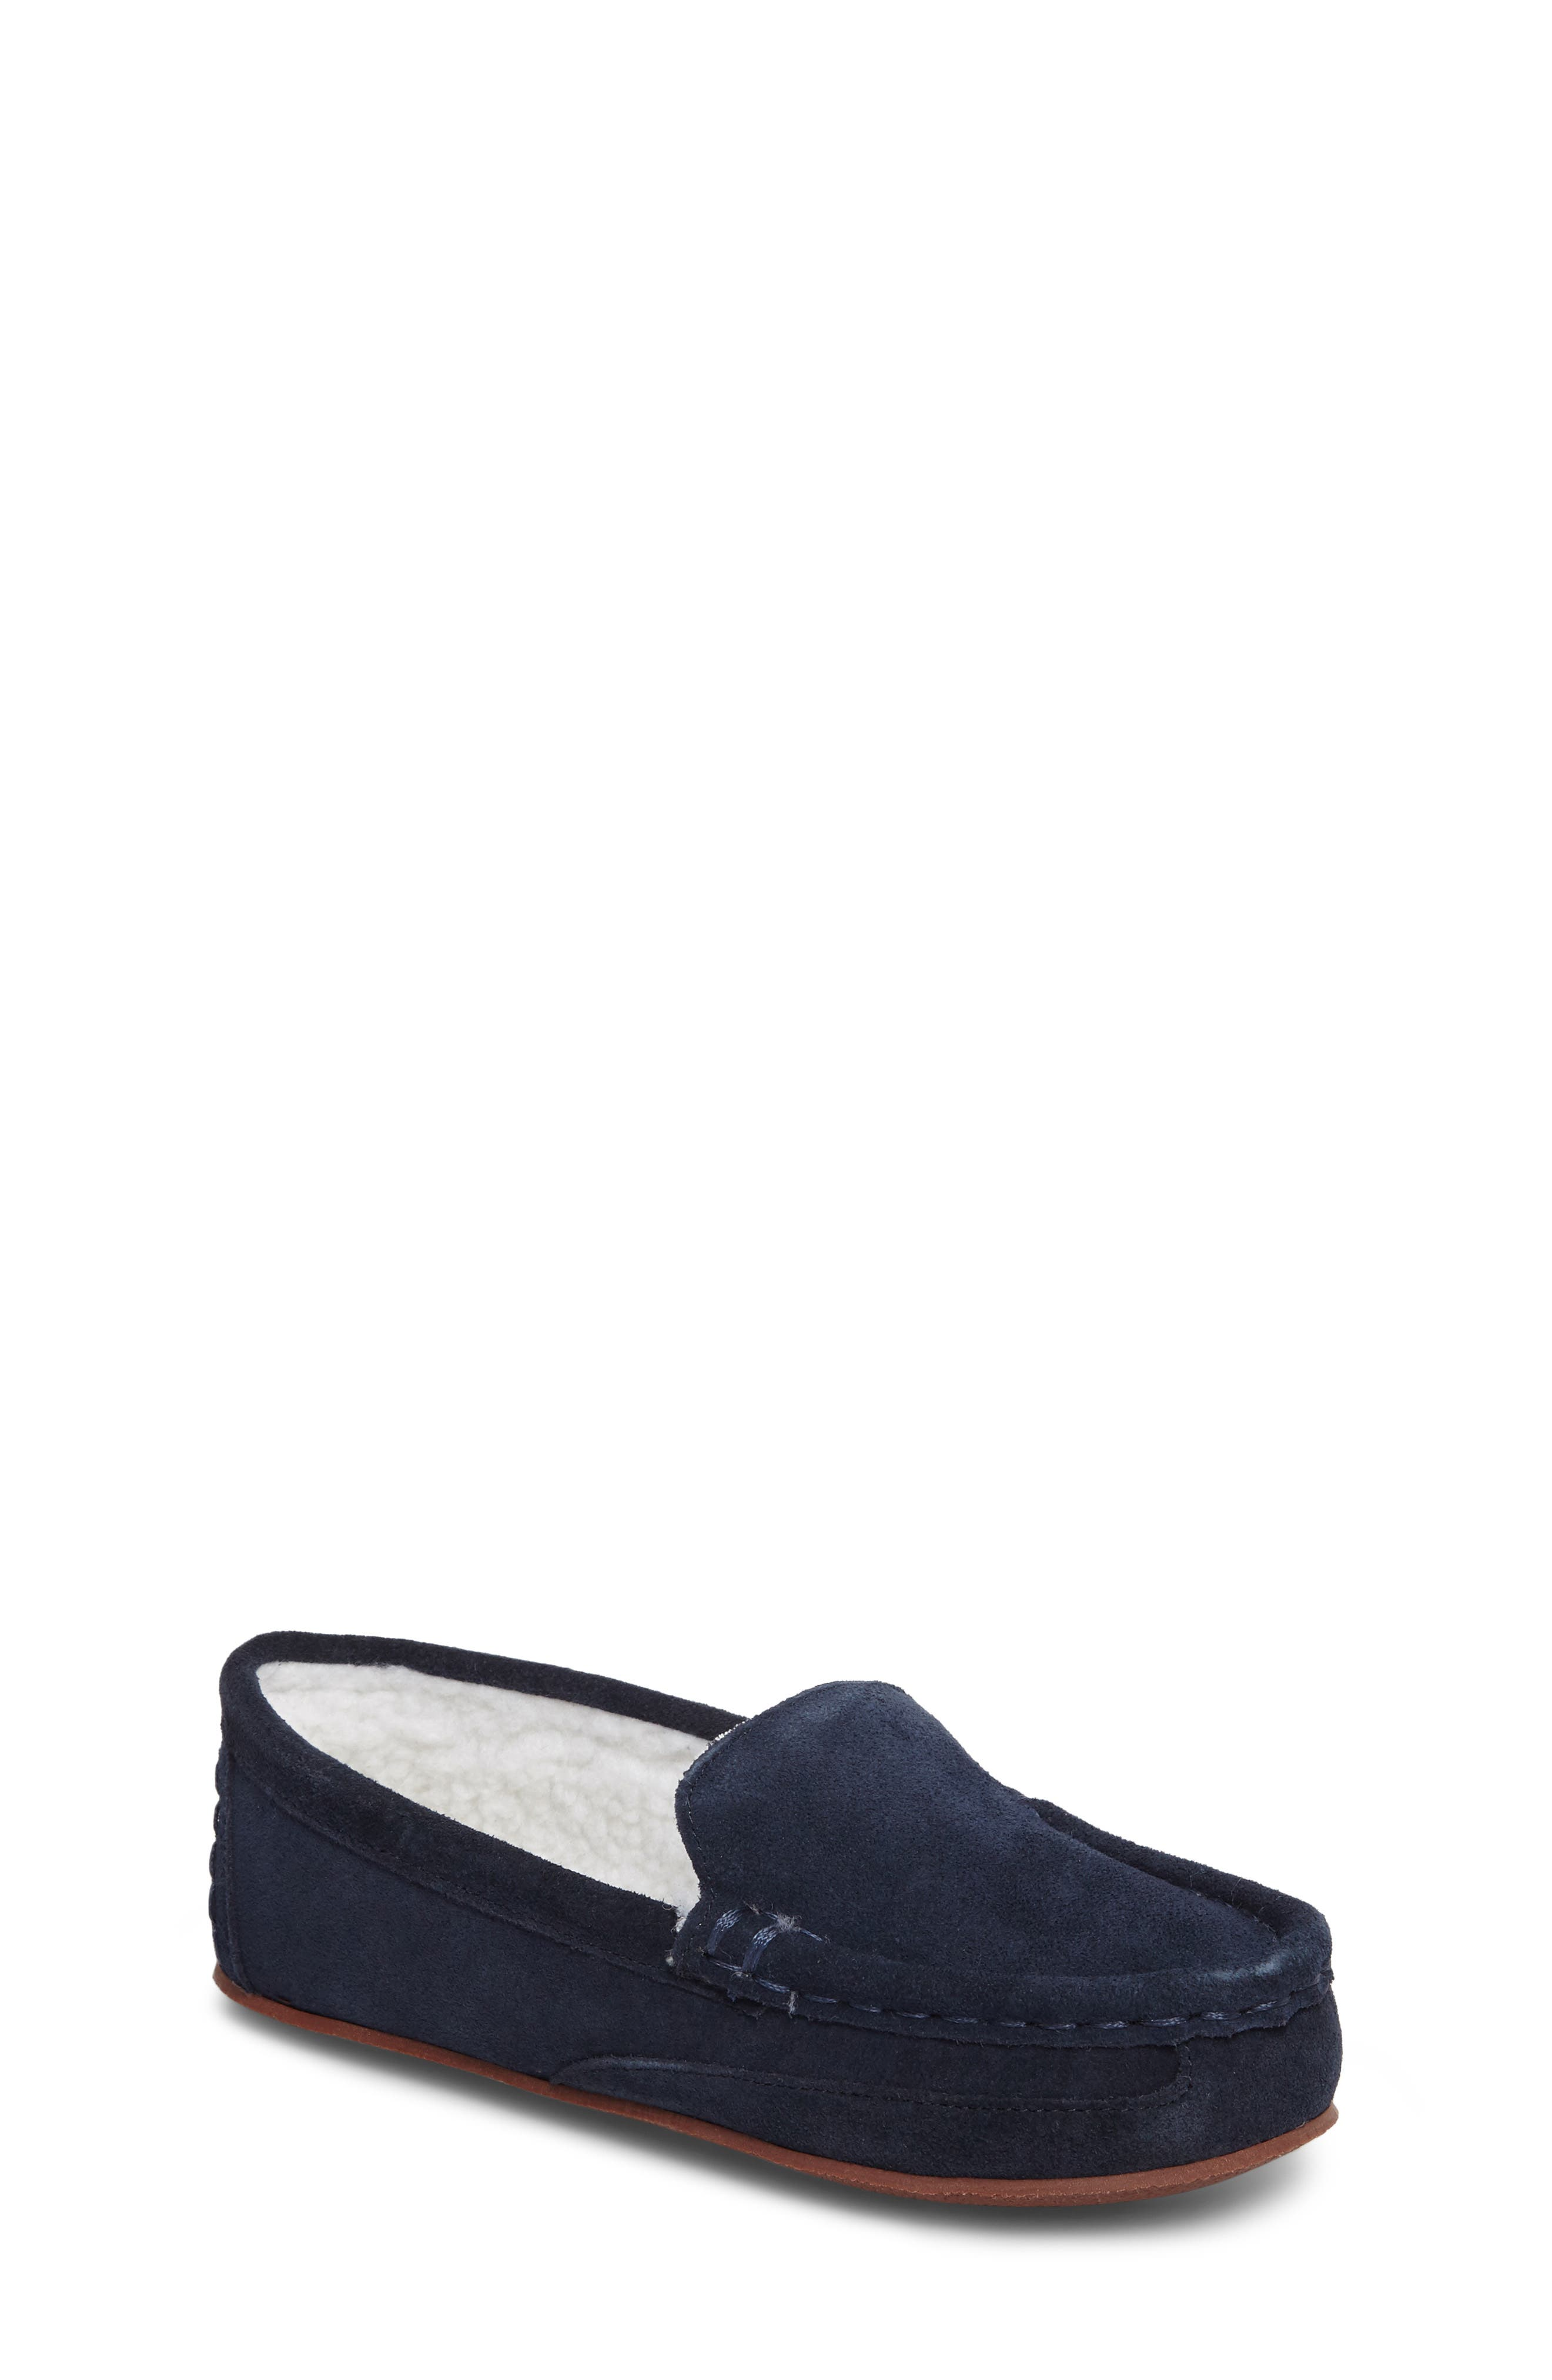 Tucker + Tate Corbin Faux Fur Lined Moccasin (Toddler, Little Kid & Big Kid)